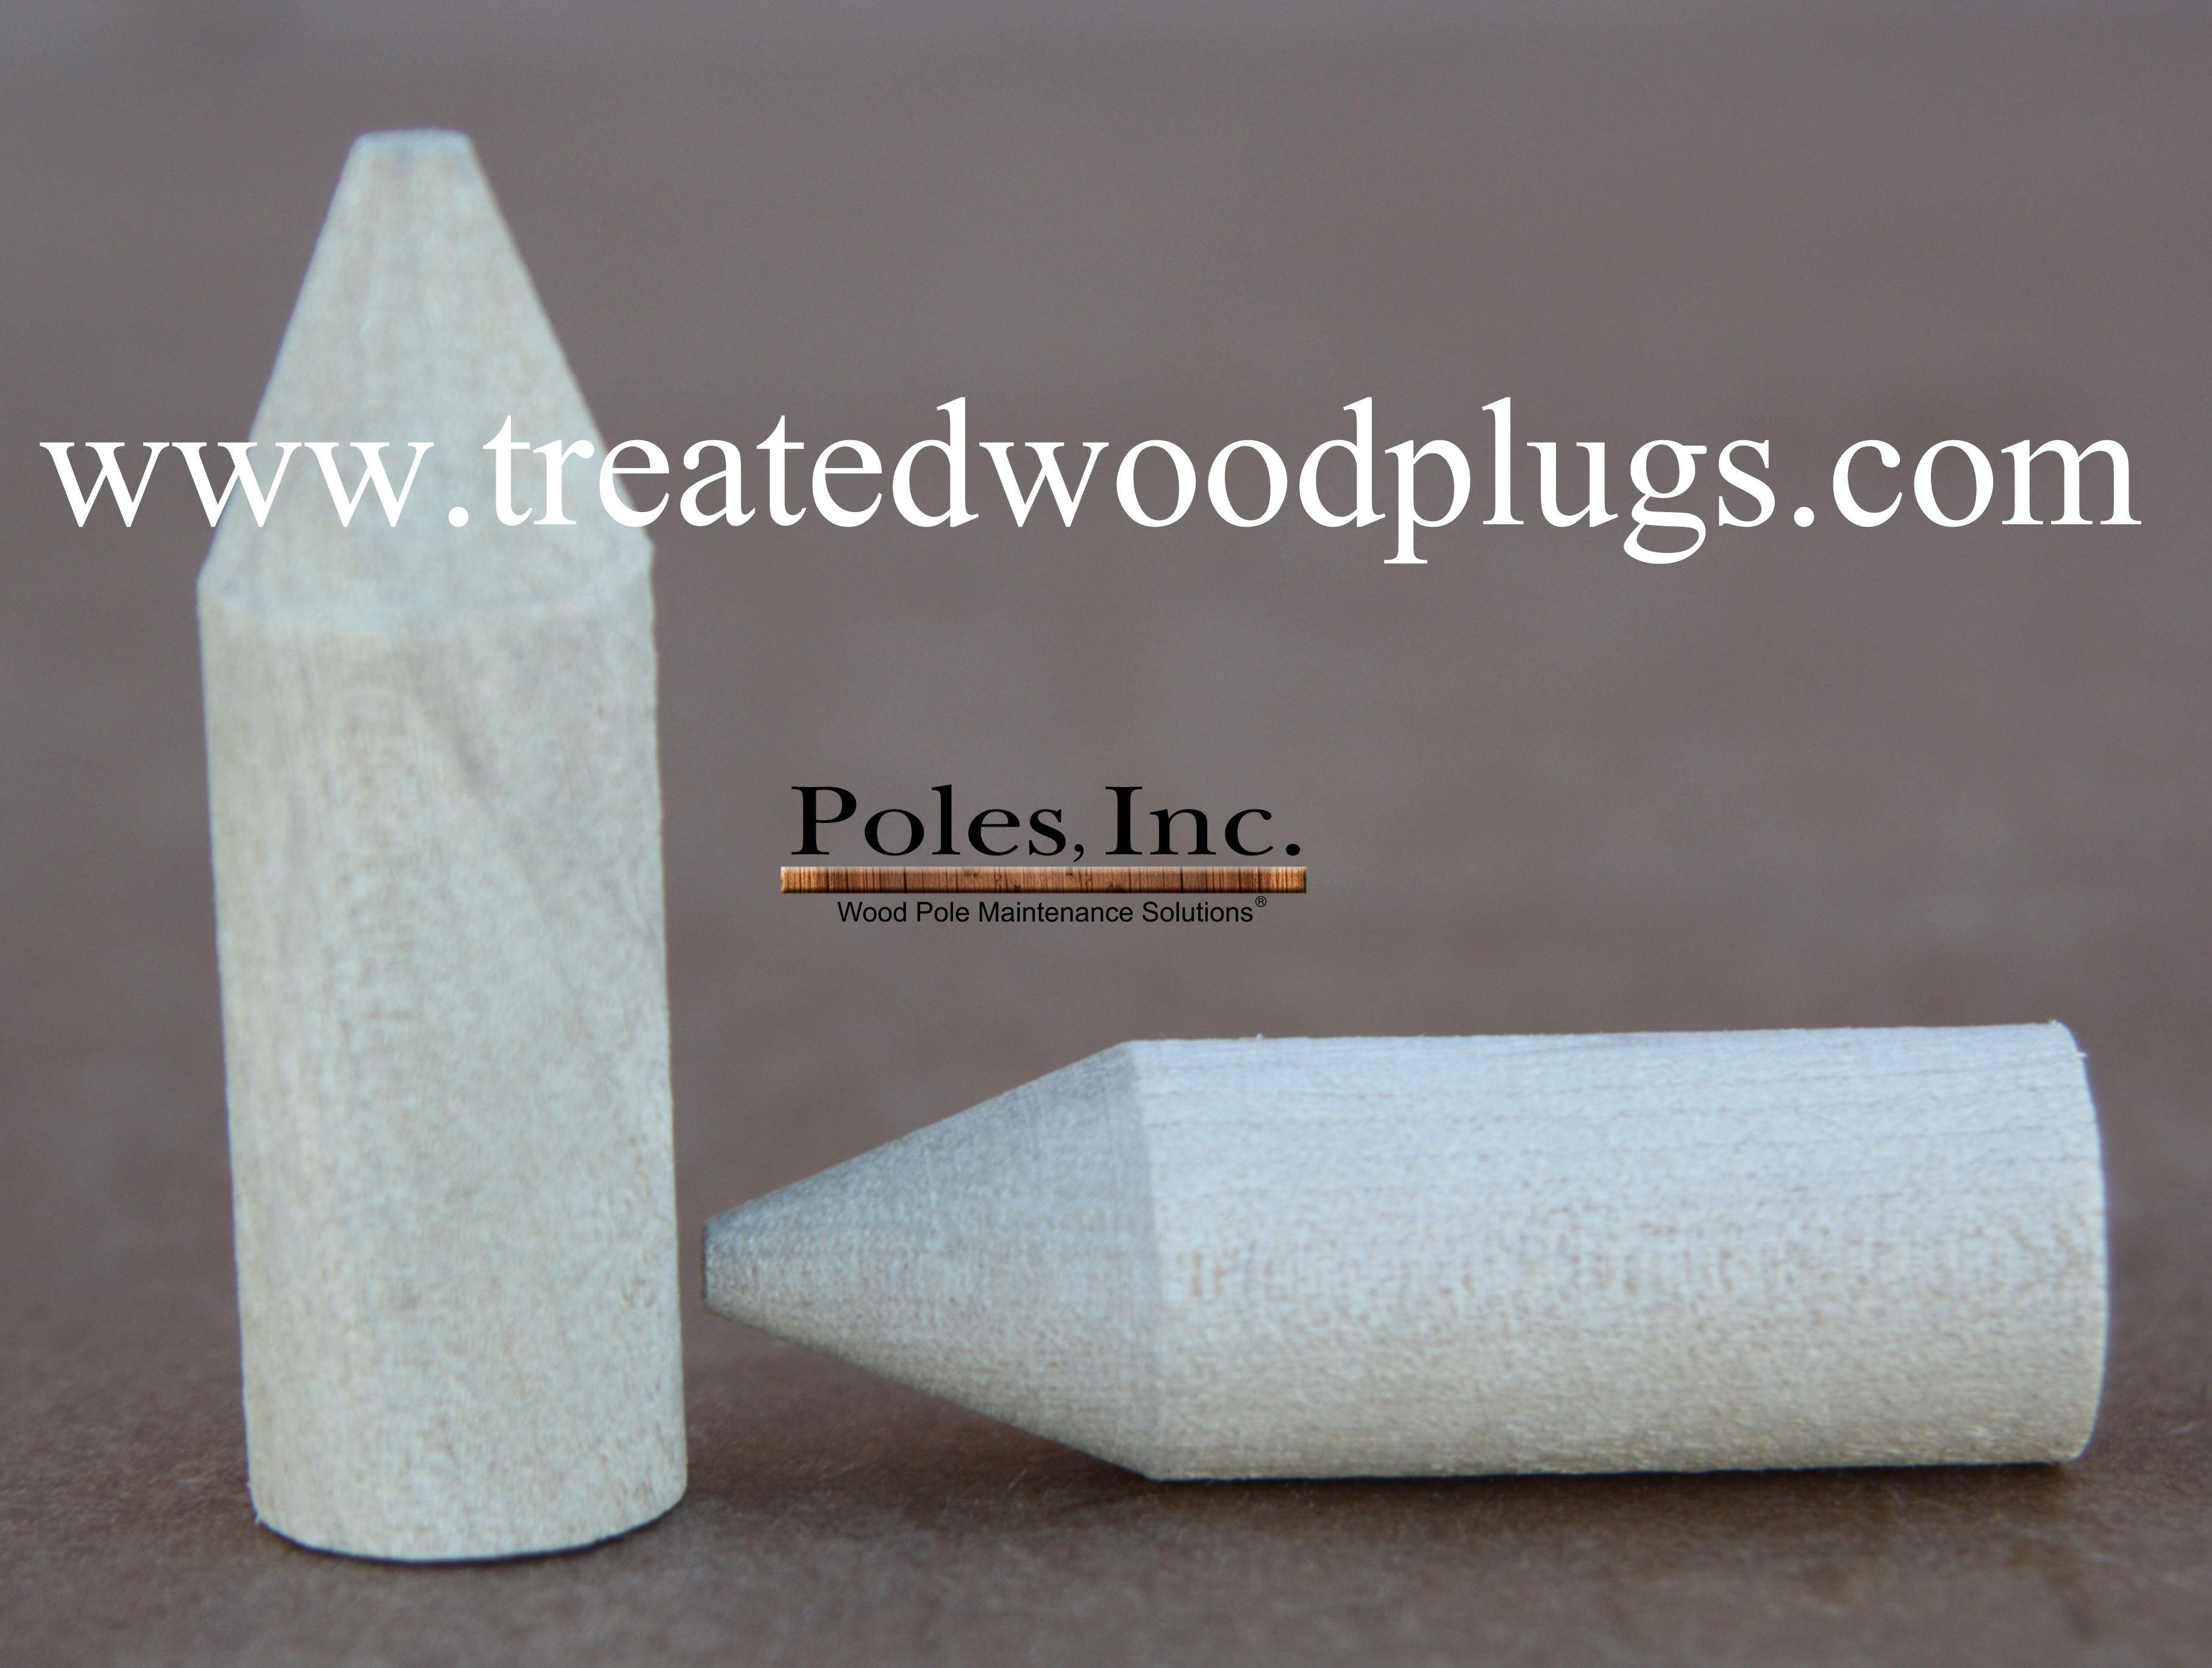 treatedwoodplugs.com